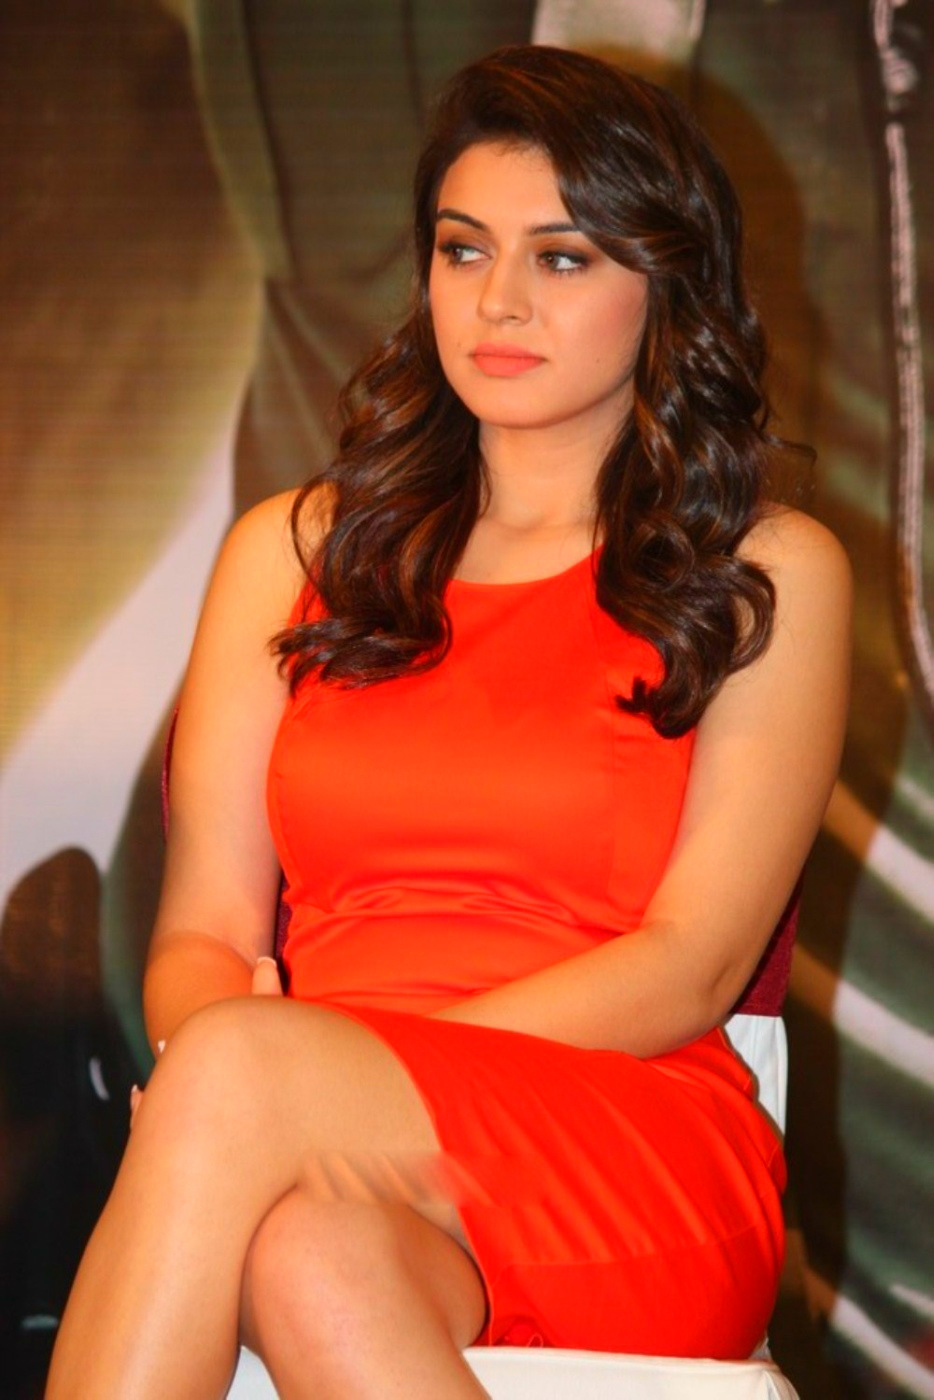 Hansika Motwani is just stunningly hot in this short red dress.